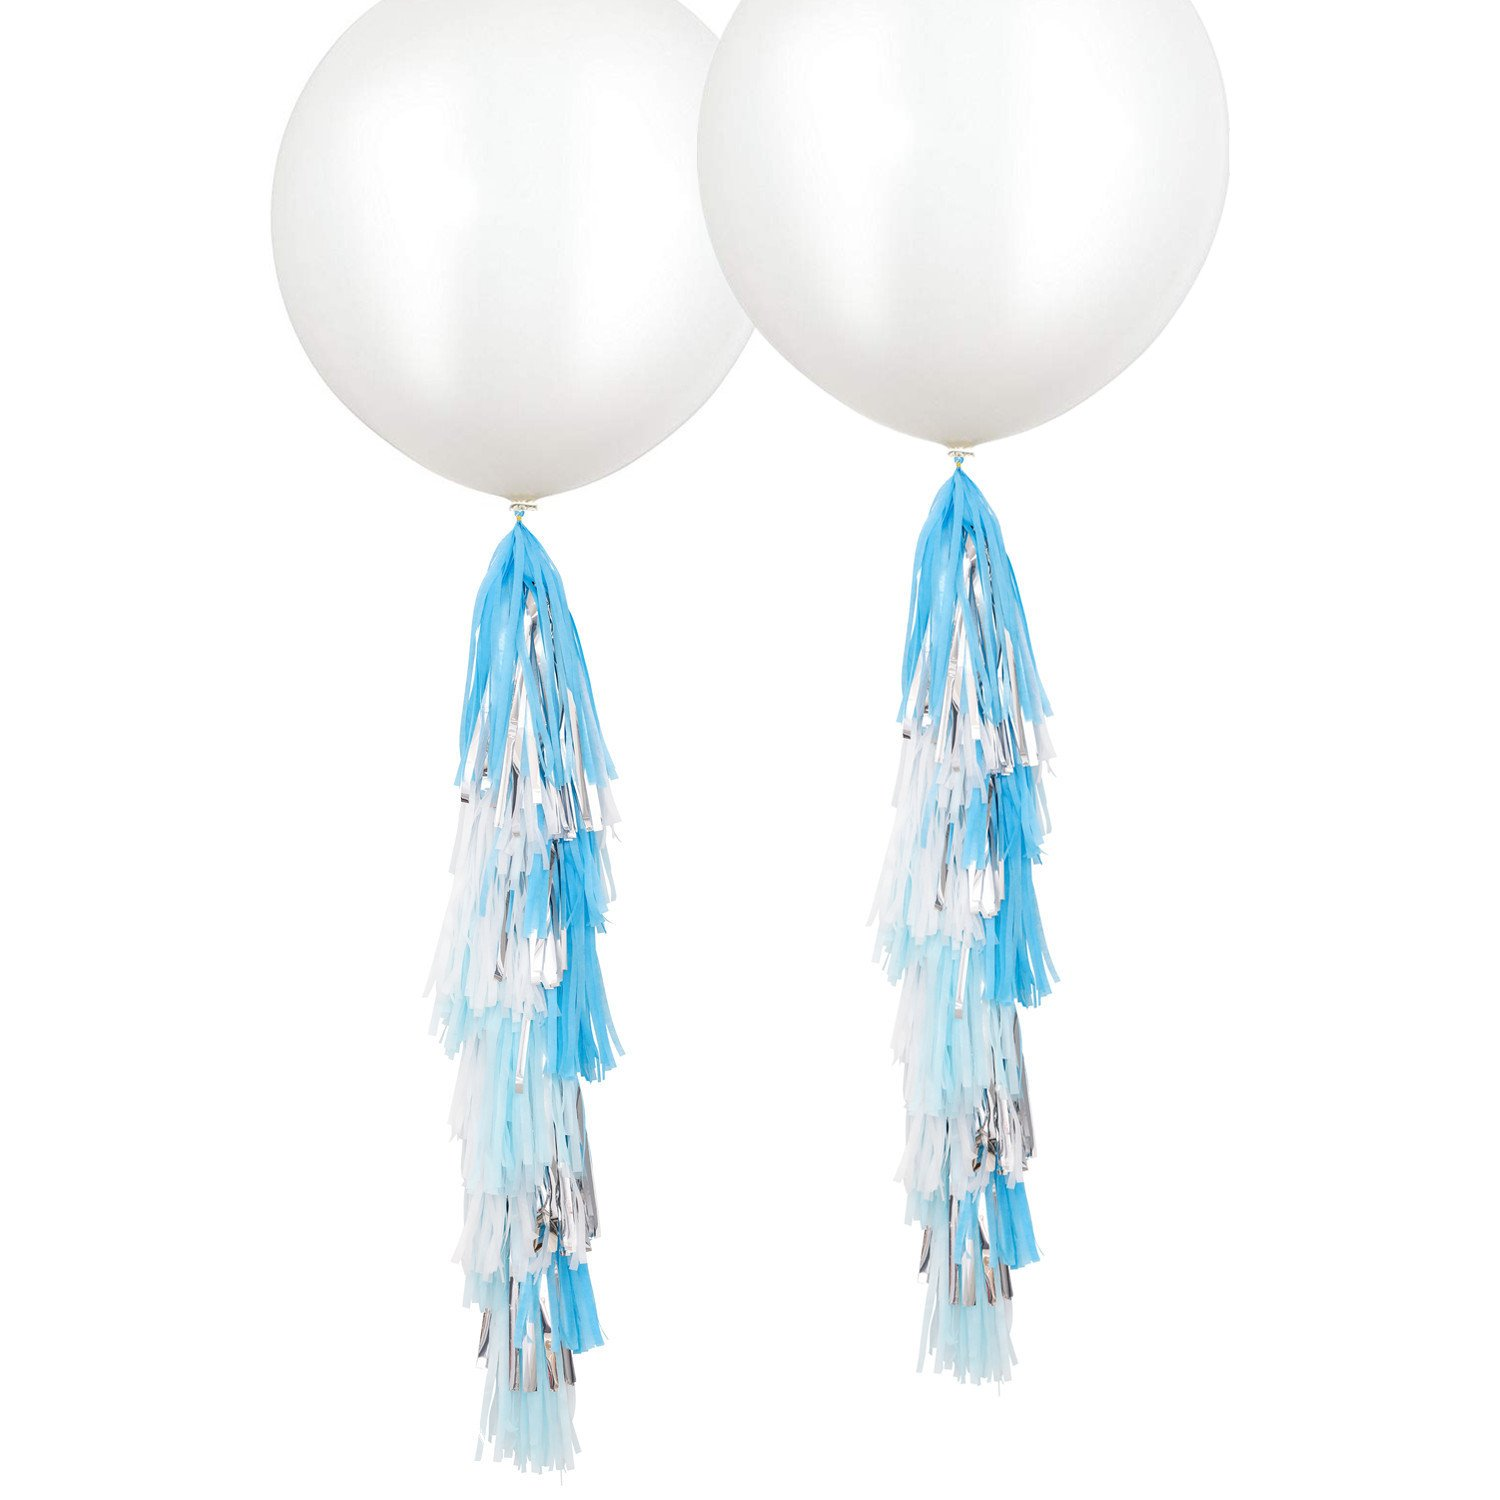 Fonder Mols 2 Pack 36 inch Giant White Round Latex Balloons with Blue Turquoise White Silver Tassels Garlands for Nautical Anchor Frozen Party Hanging Decorations